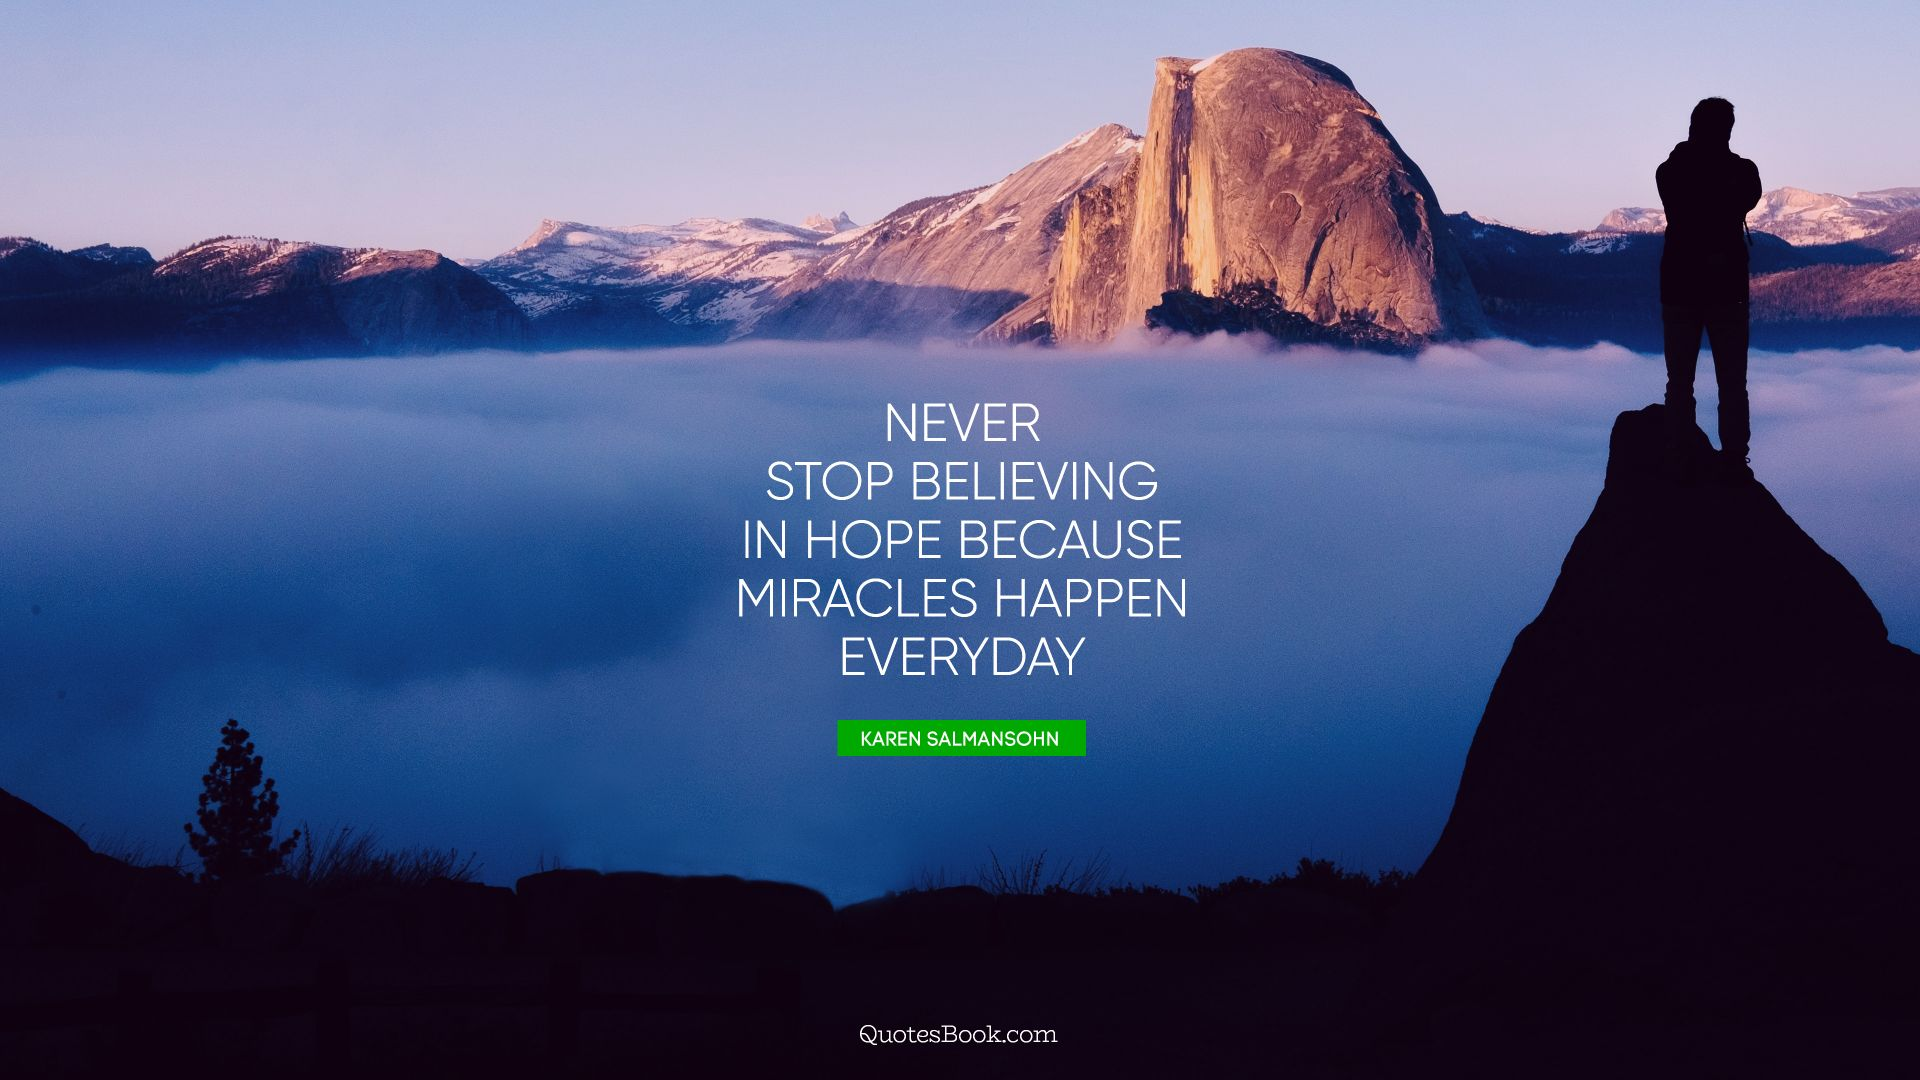 Never stop believing in hope because miracles happen everyday. - Quote by Karen Salmansohn